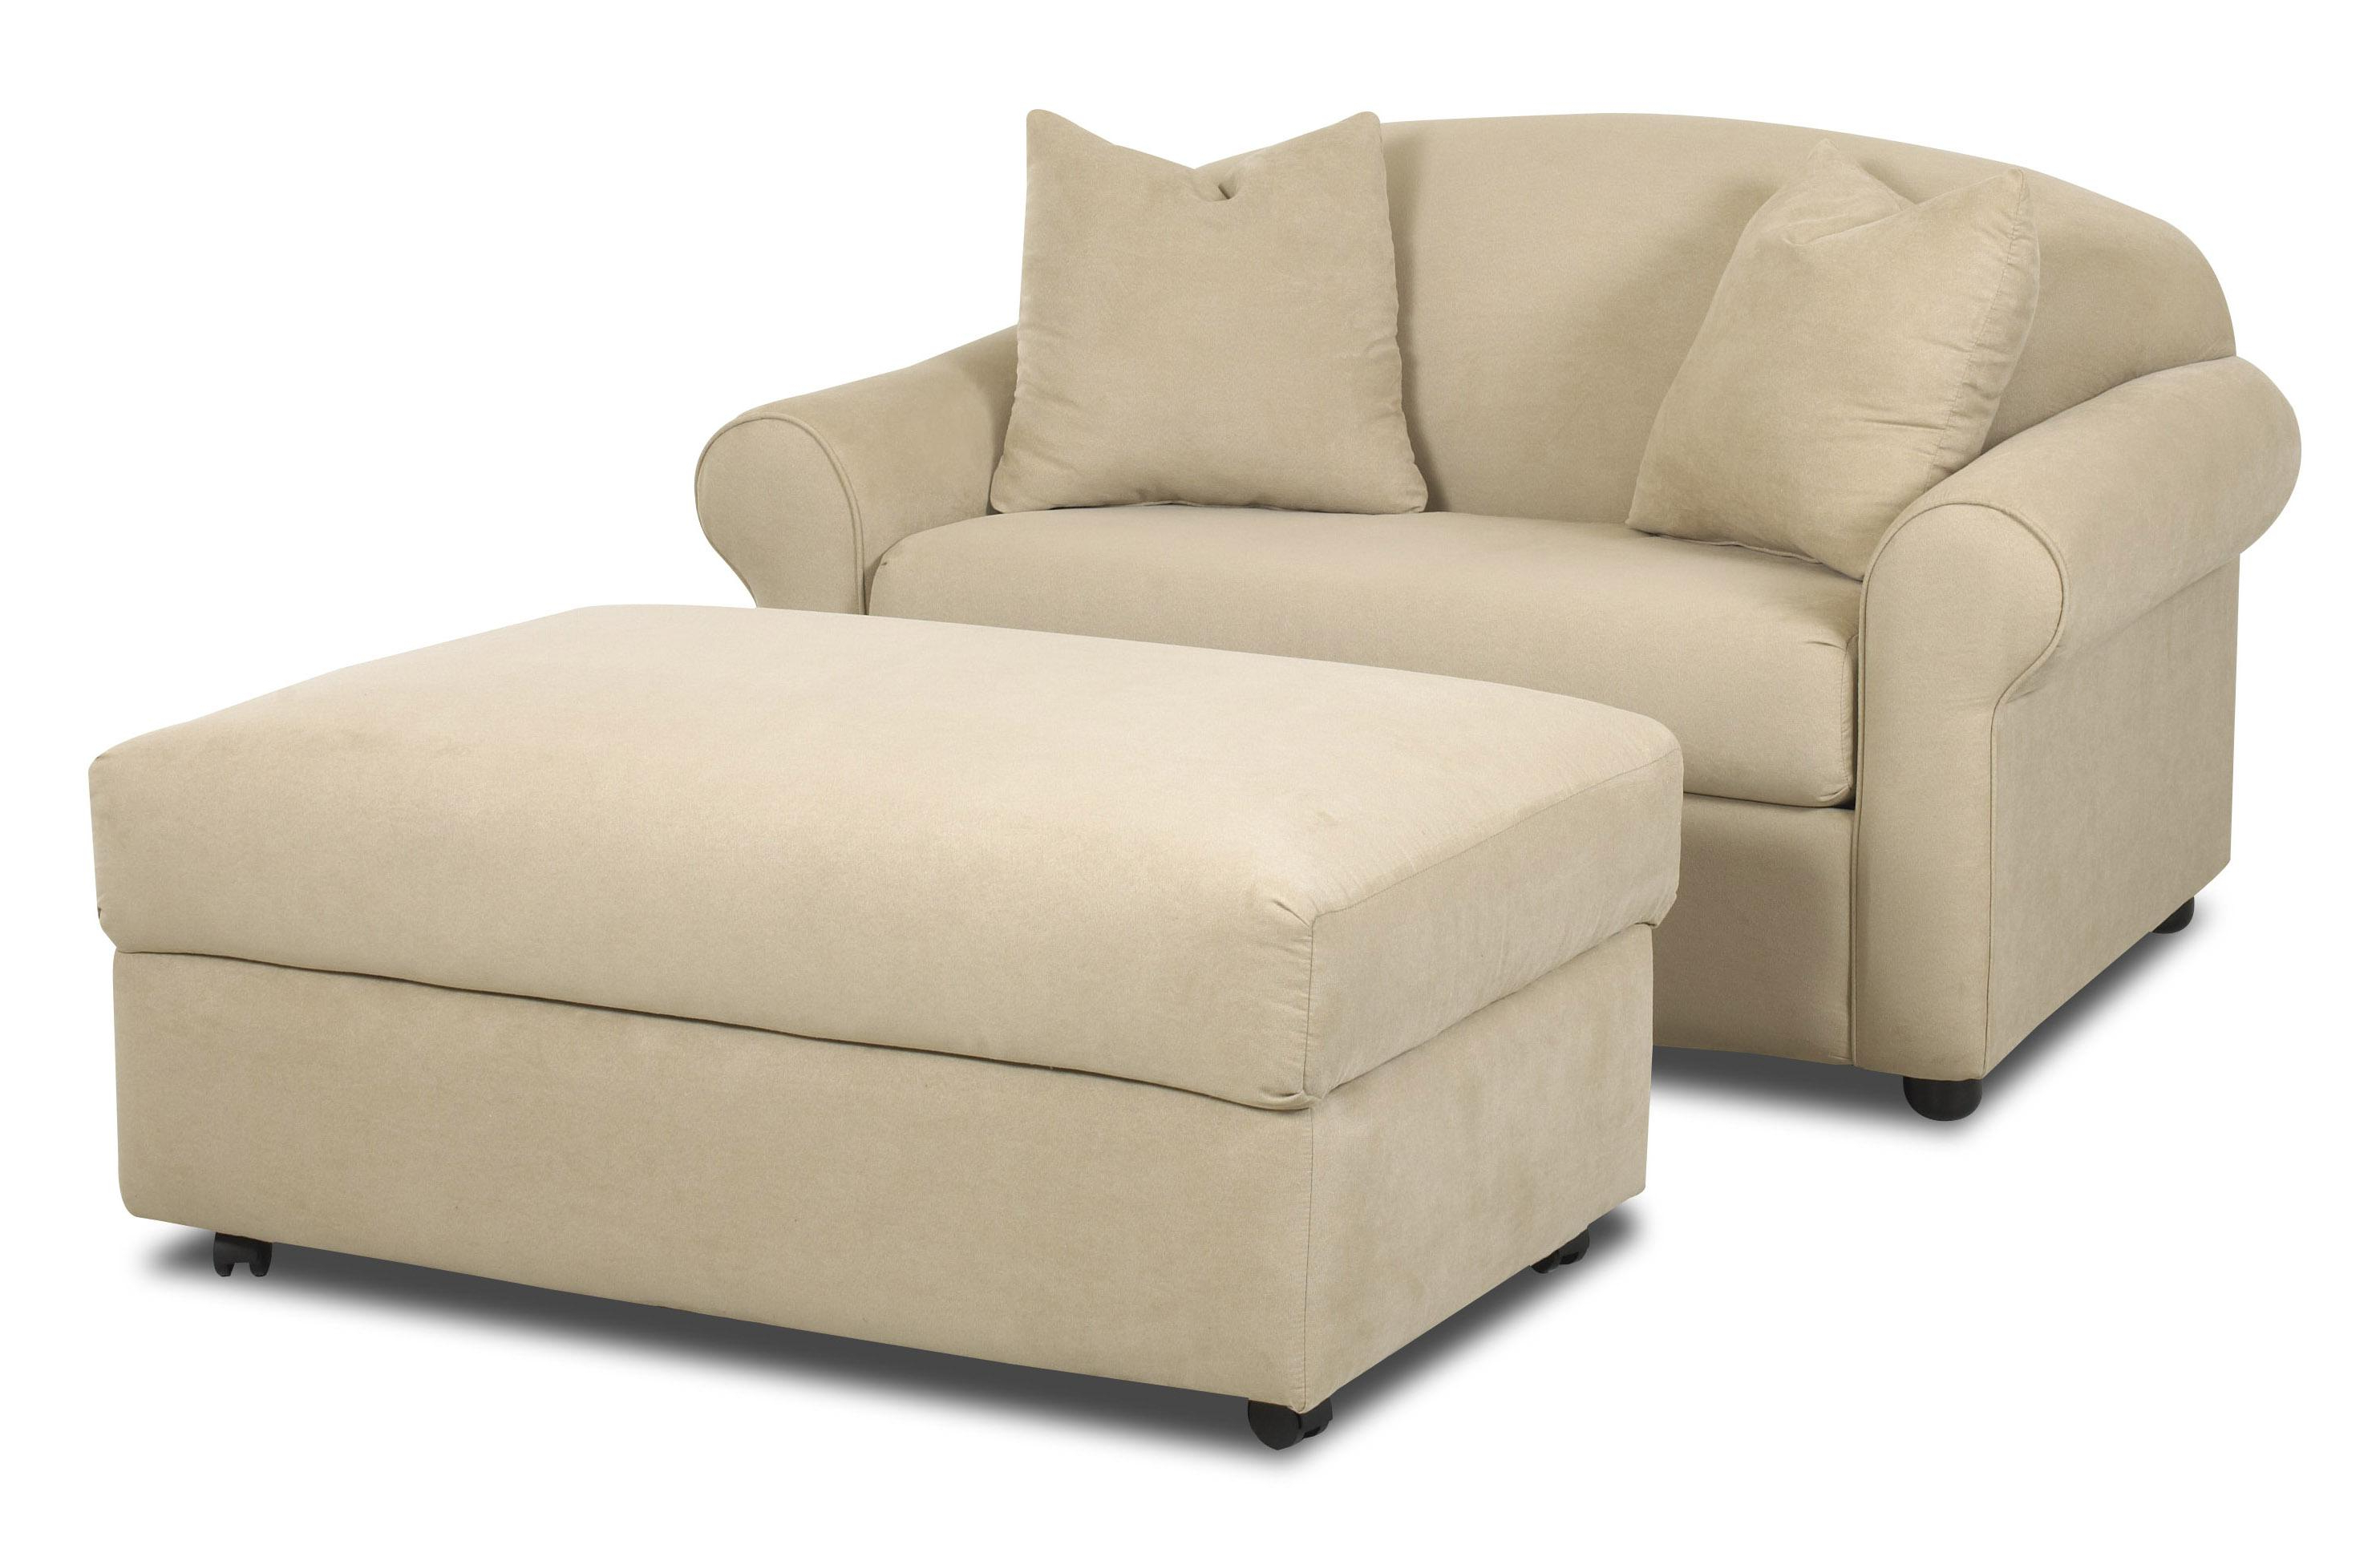 Klaussner Possibilities Chair Sleeper And Storage Ottoman Set Throughout Popular Sofa Chair With Ottoman (Gallery 2 of 20)